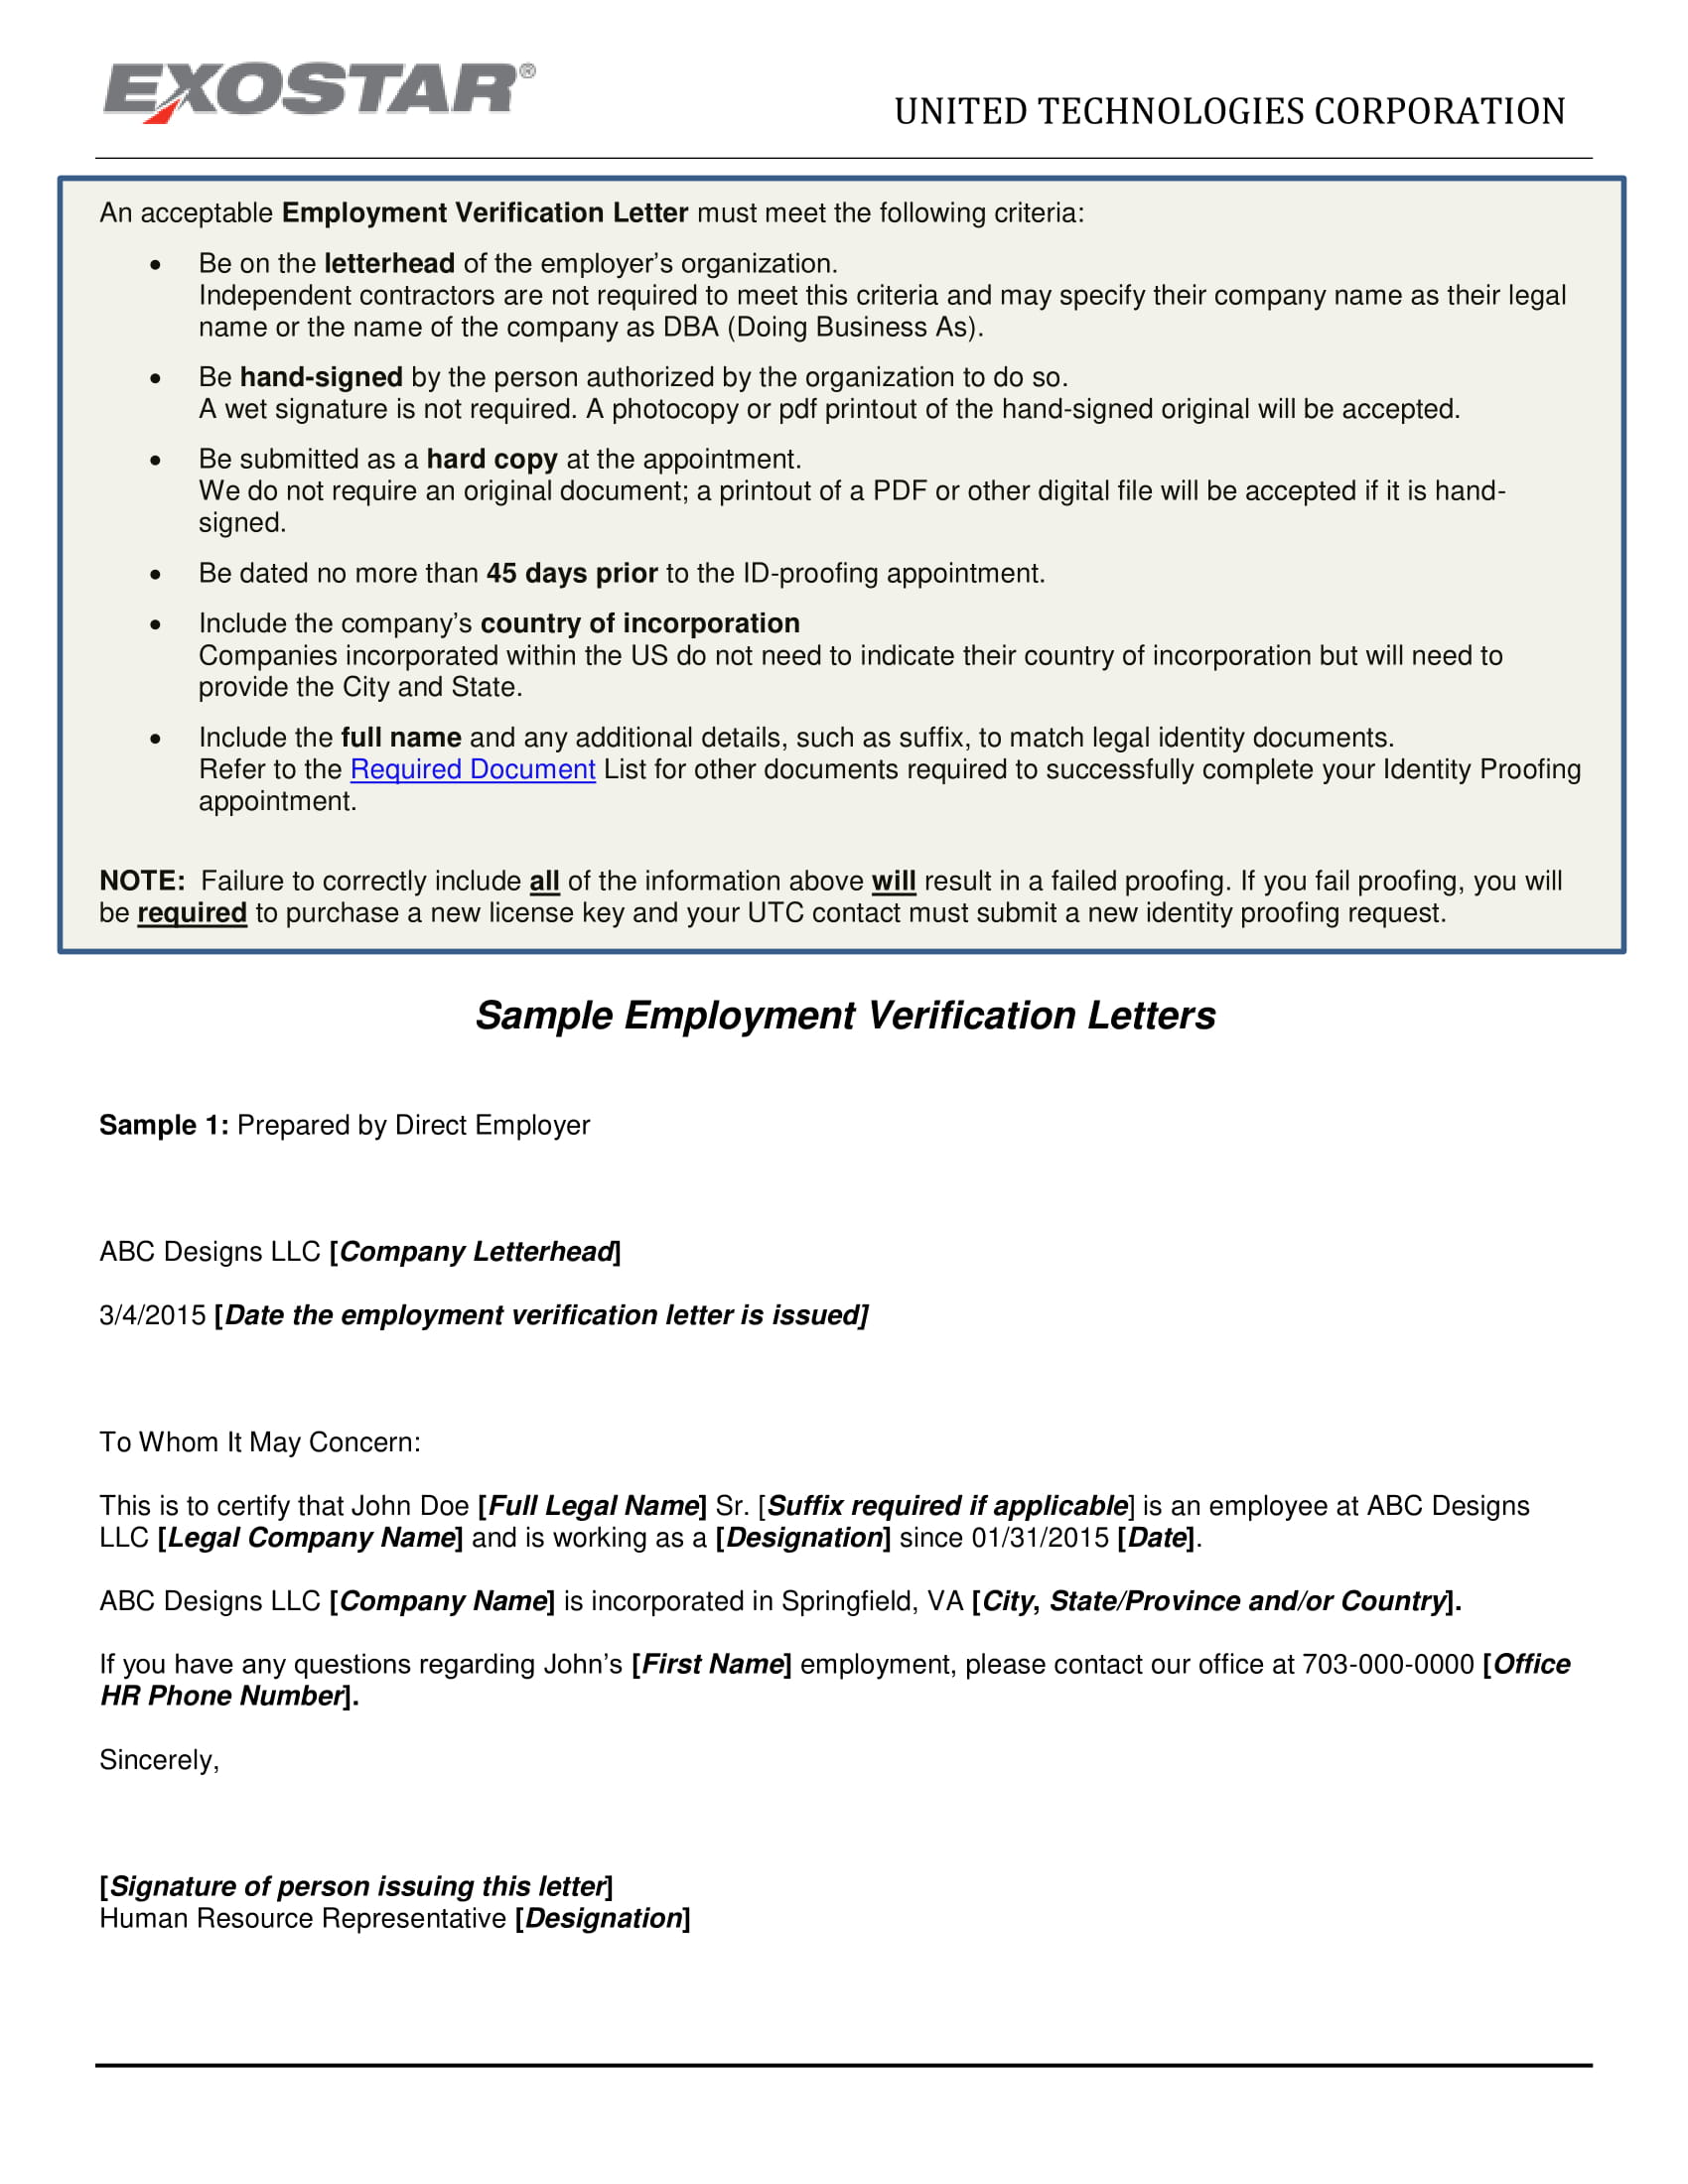 Employment Verification Letter Examples  Pdf Doc